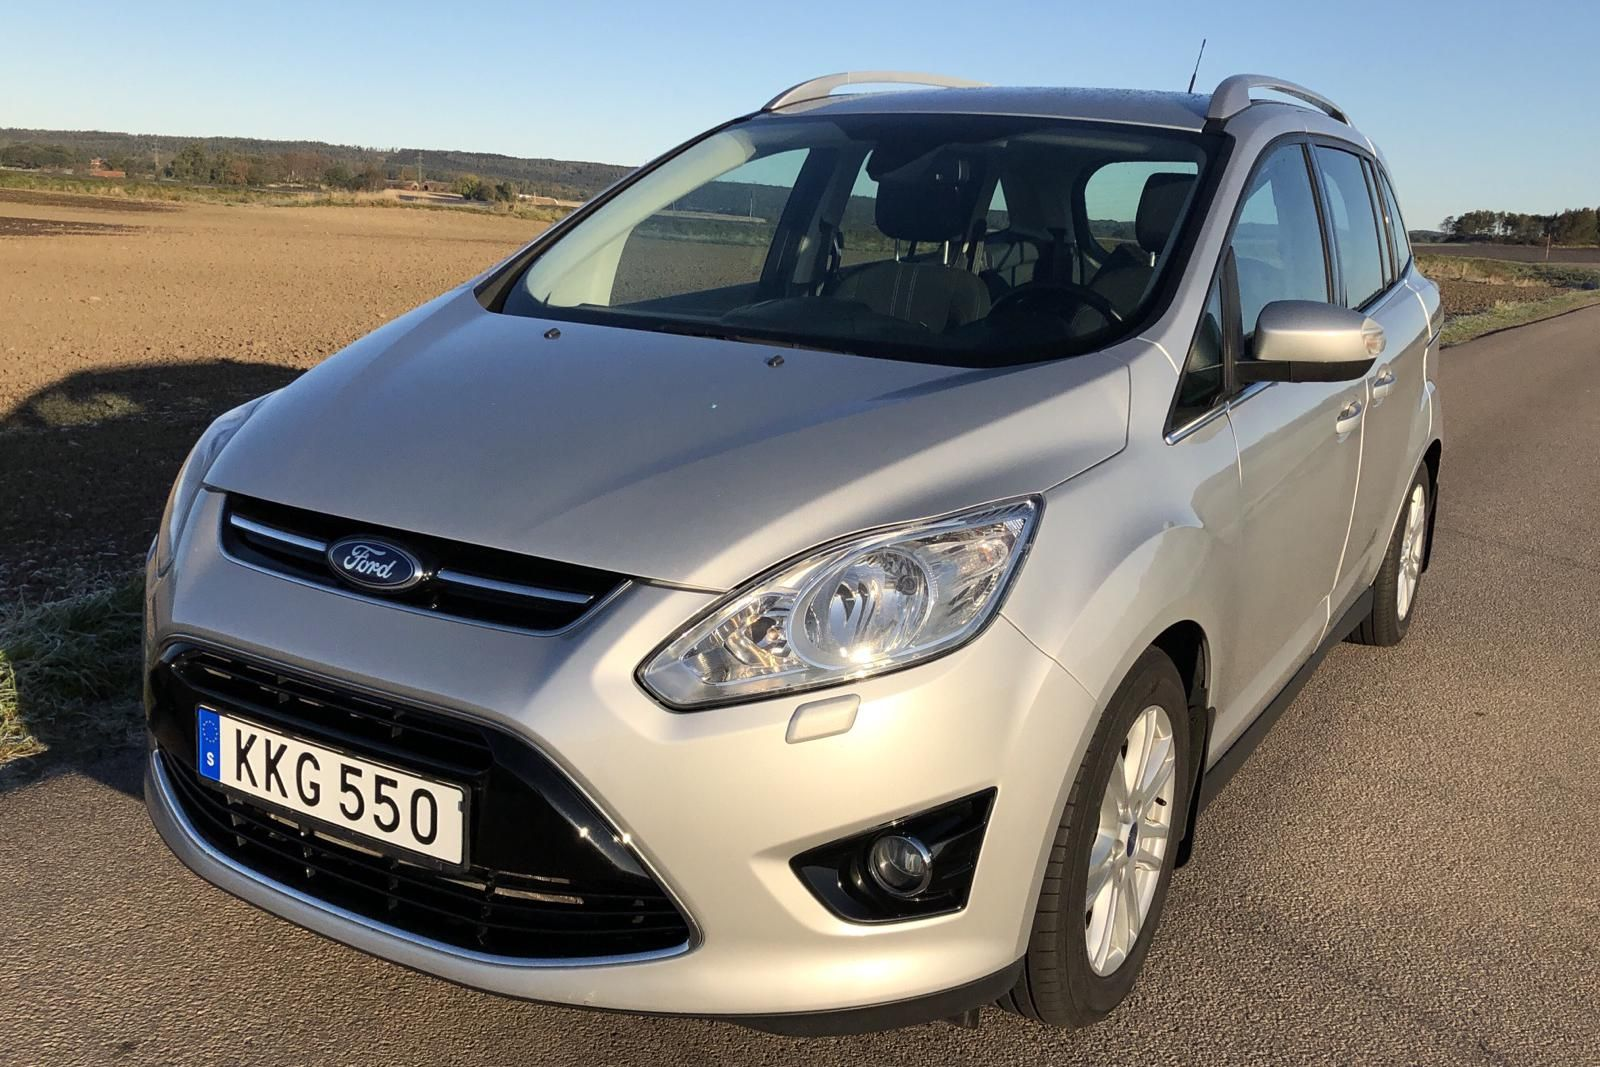 Ford Grand C-MAX 2.0 TDCi (115 PS)